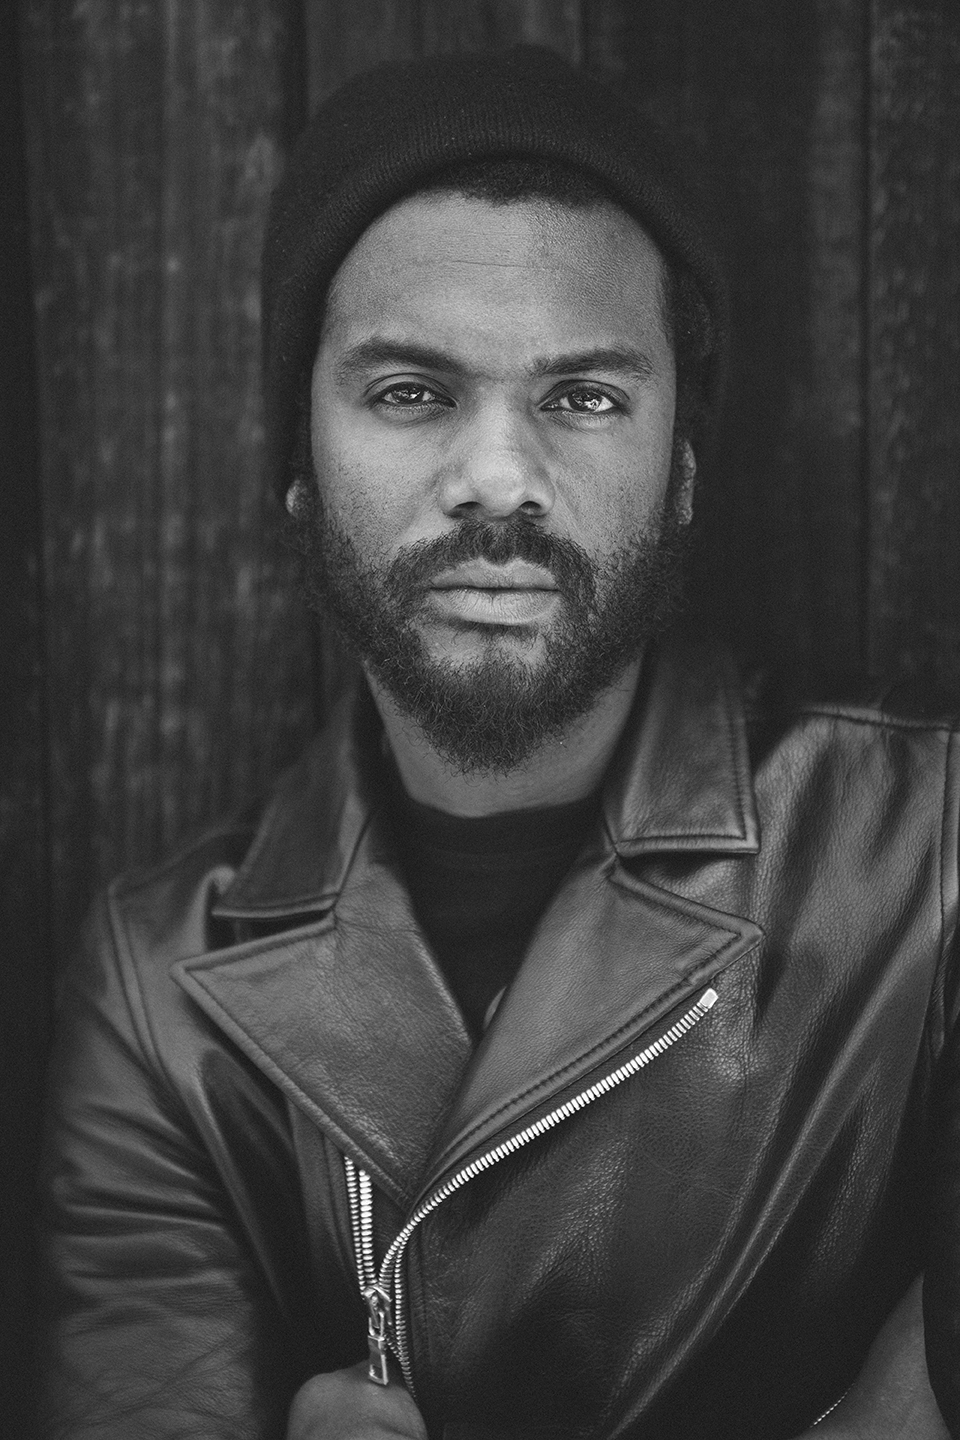 EVOAKE_FLOOD_GARYCLARKJR_FINALS-9677